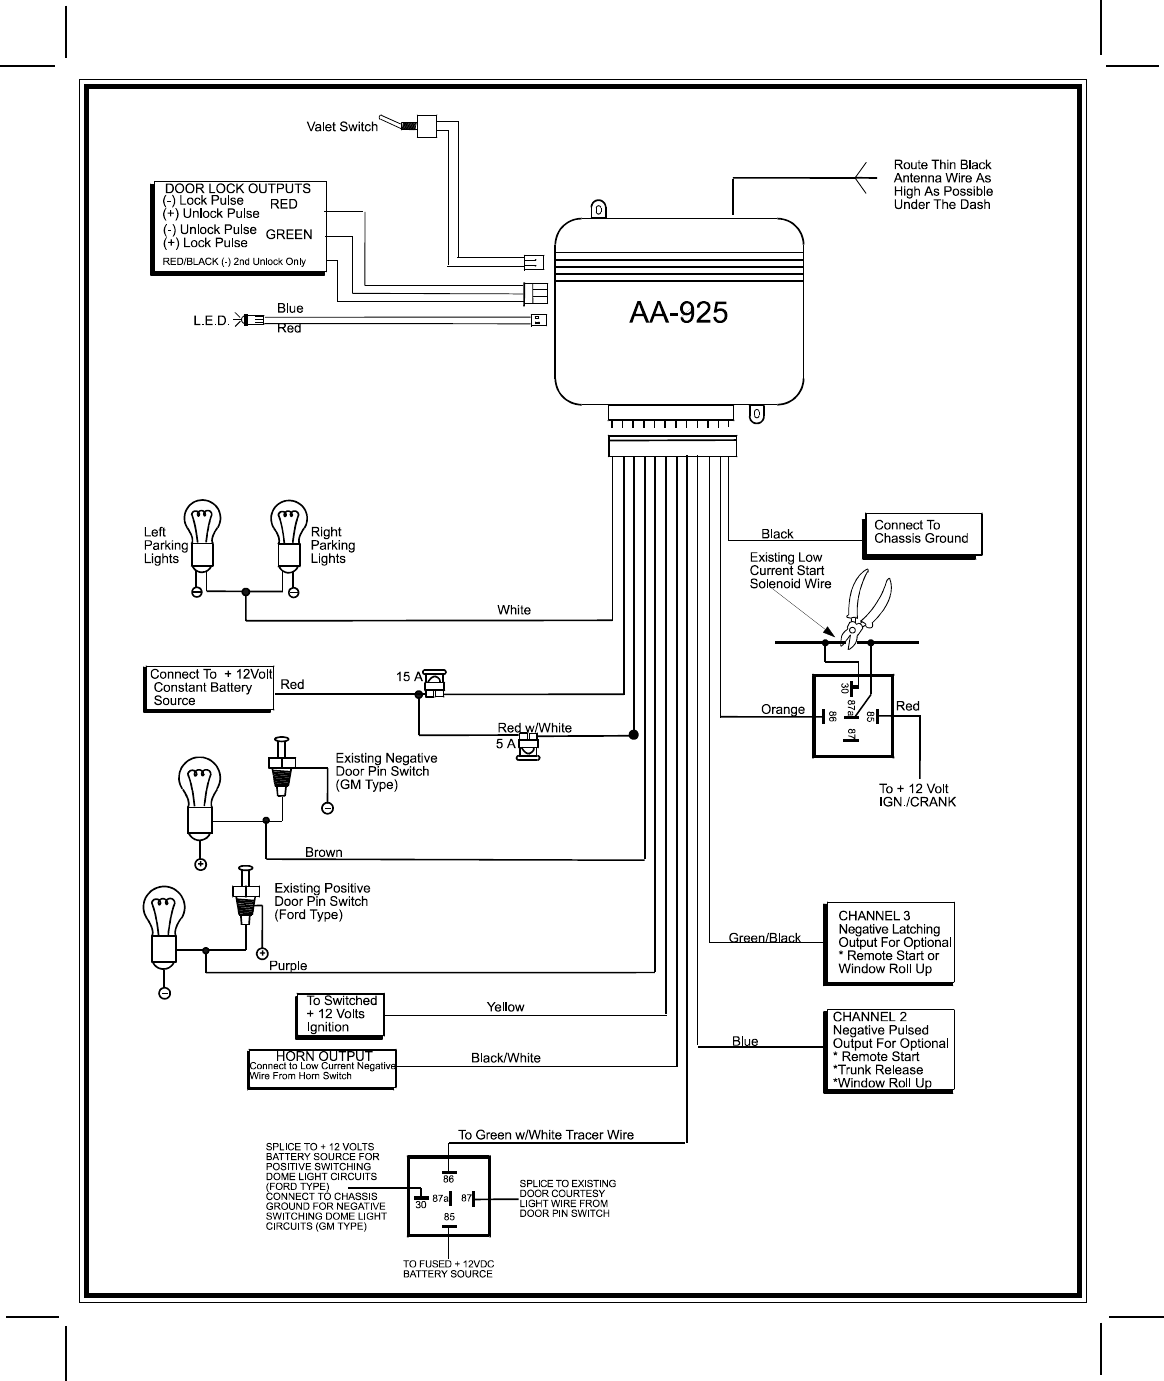 728e5939 5a52 46a4 ba14 2e72baef2843 bg8 uniden car alarm wiring diagram uniden wiring diagrams collection Burglar Alarm Wiring Diagram at n-0.co